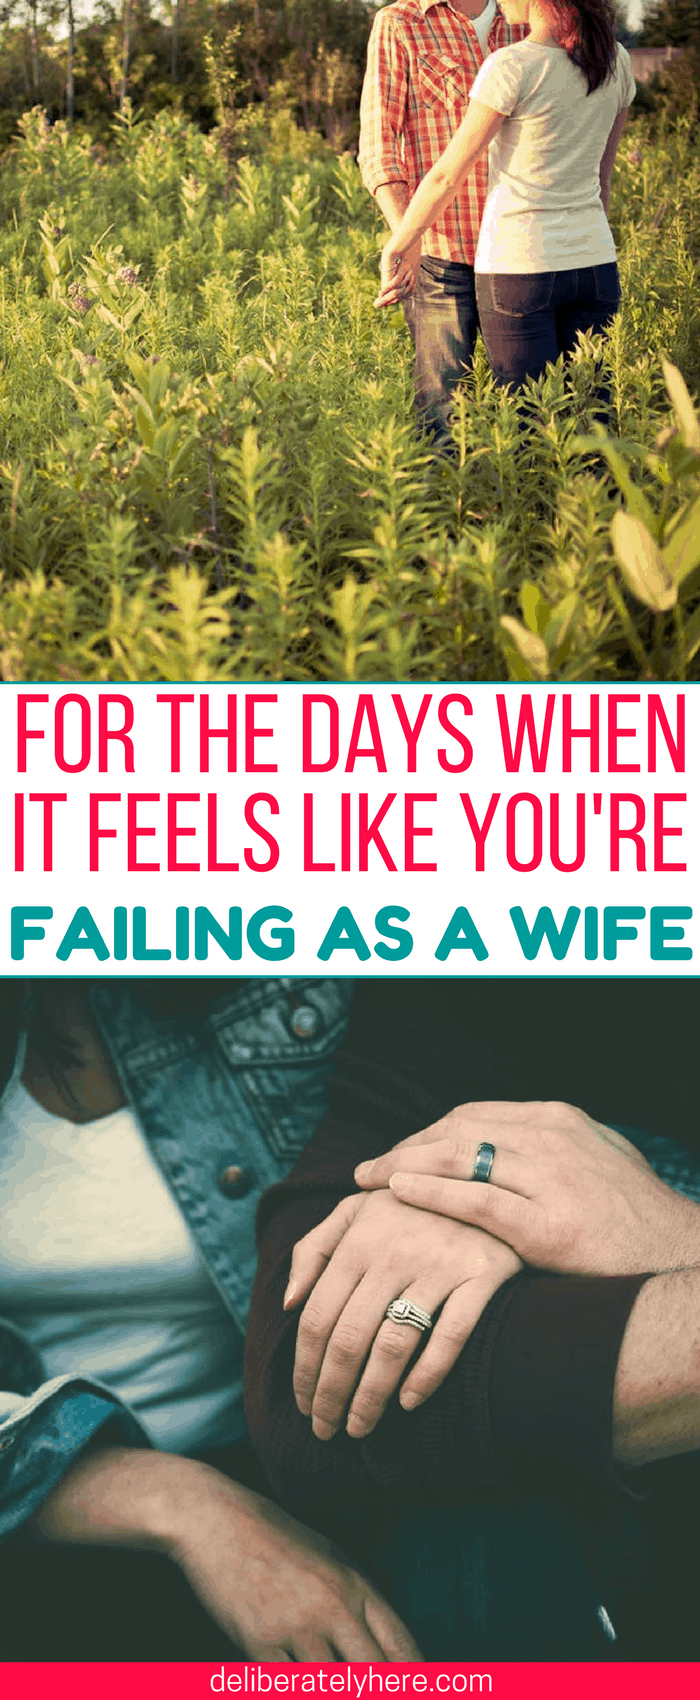 Encouragement for the days when it feels like you're failing as a wife